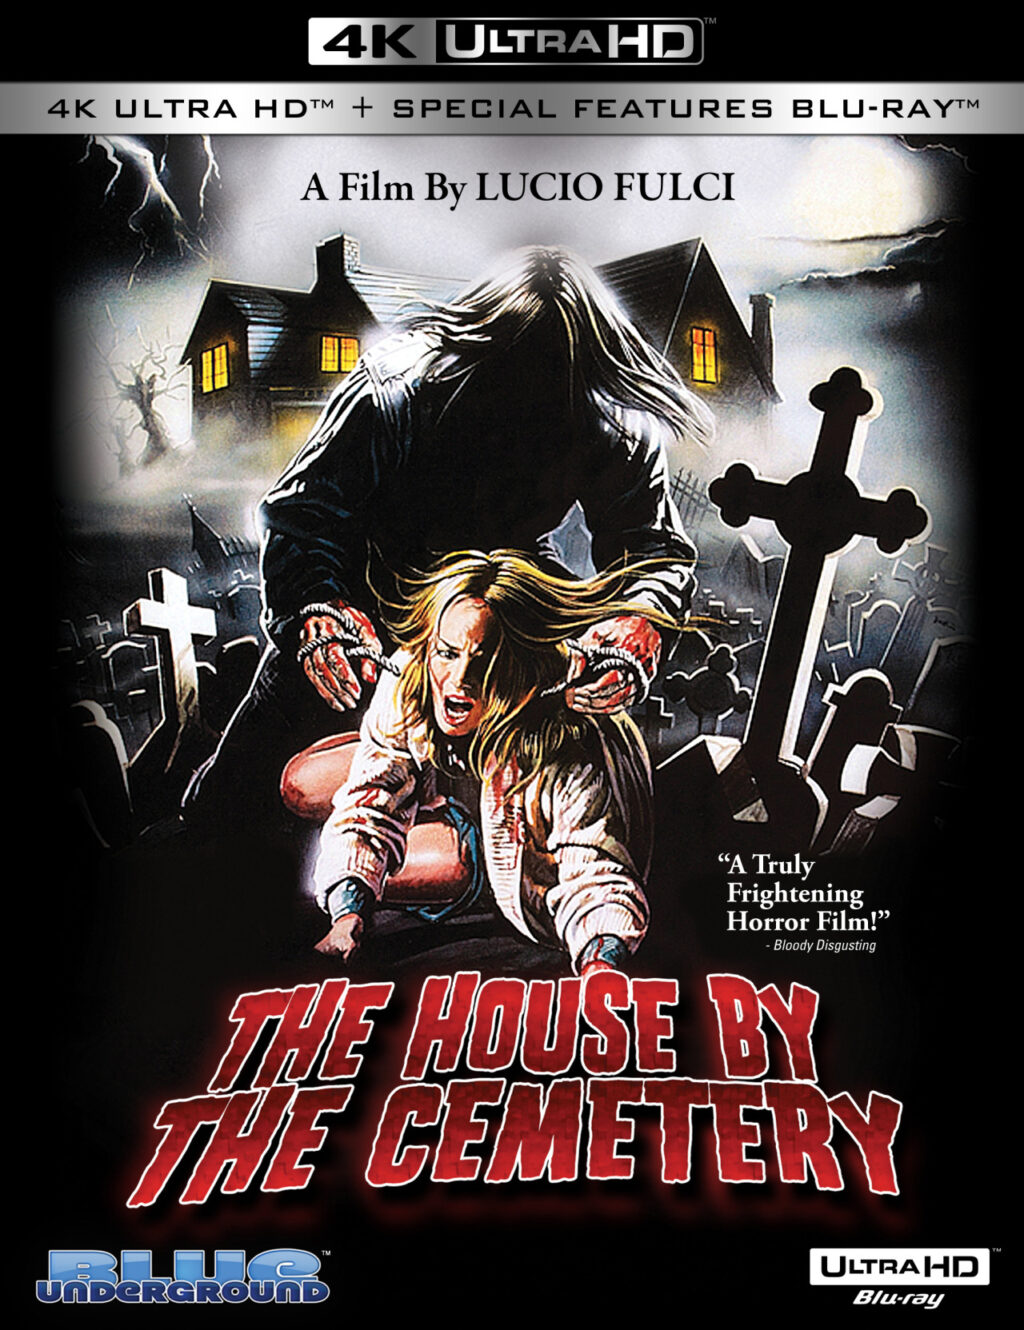 House by the Cematary 1024x1330 - Lucio Fulci's THE HOUSE BY THE CEMETERY Hits 4K Ultra HD 8/25